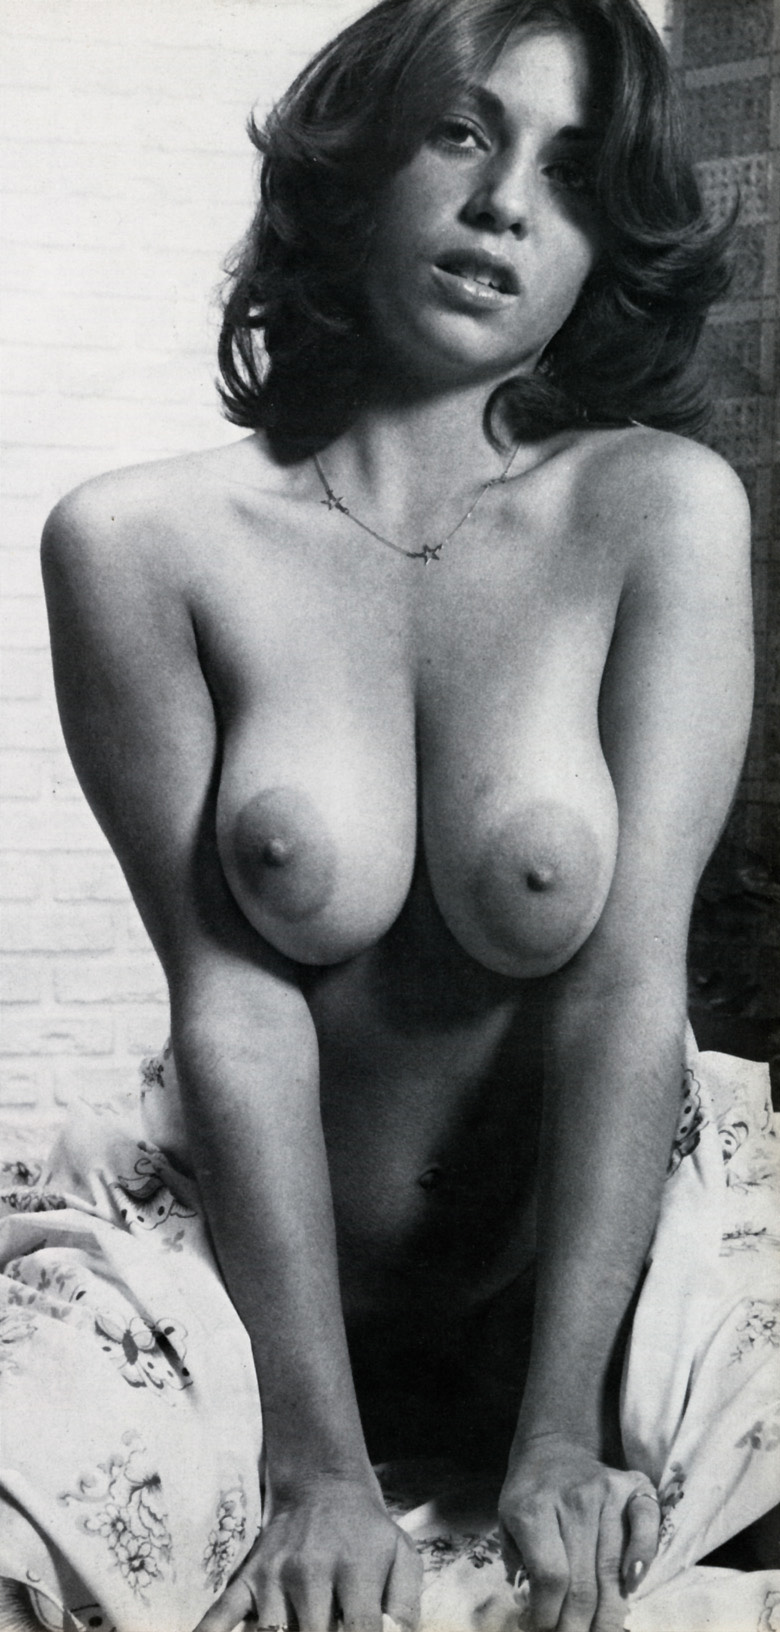 vintage-erotic-photos-44